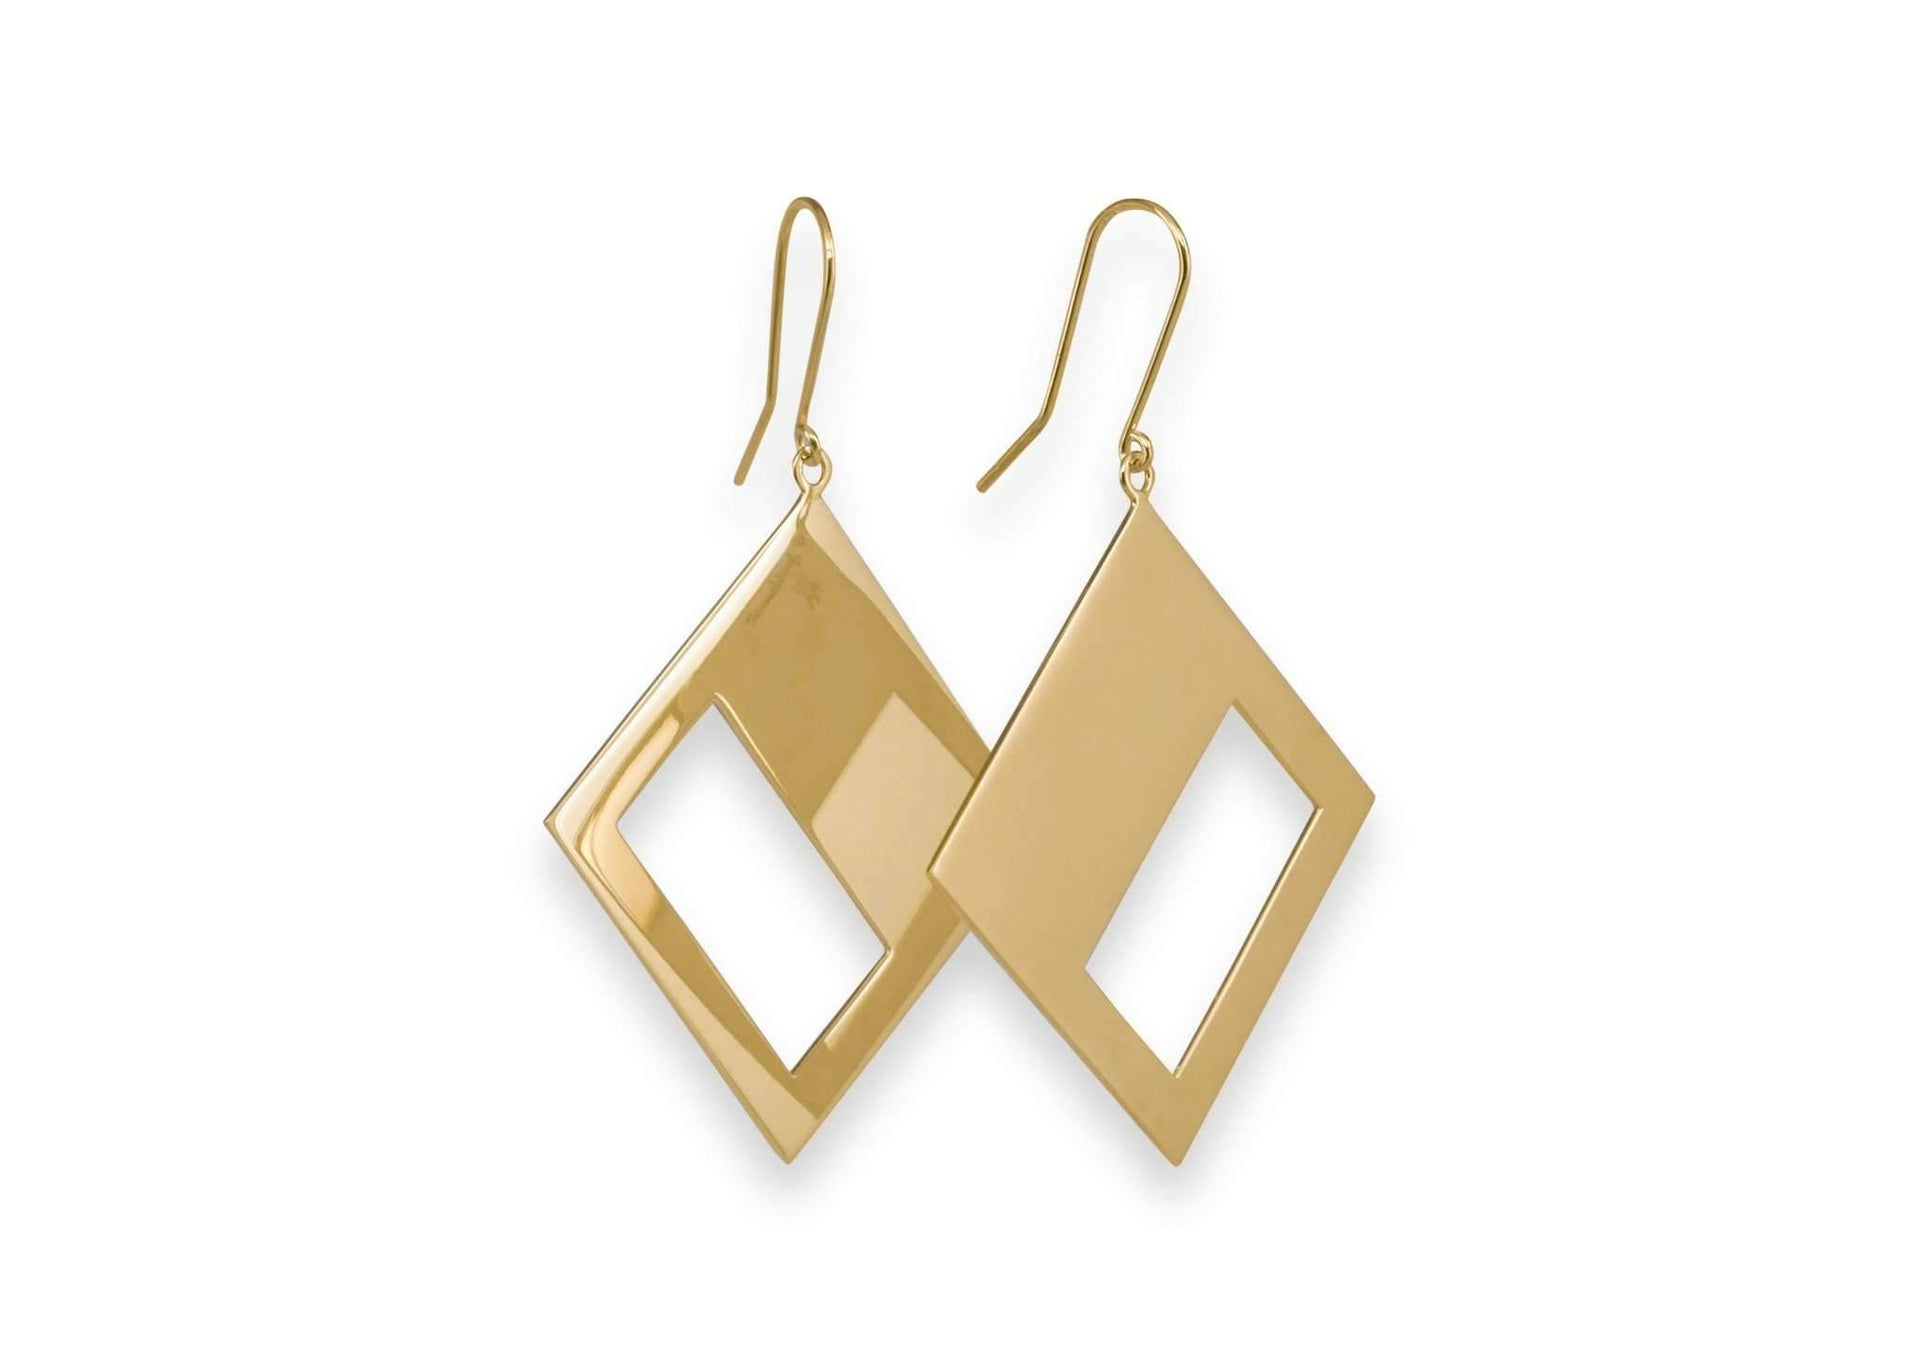 2019 Legacy Portrait Earrings, Yellow Gold